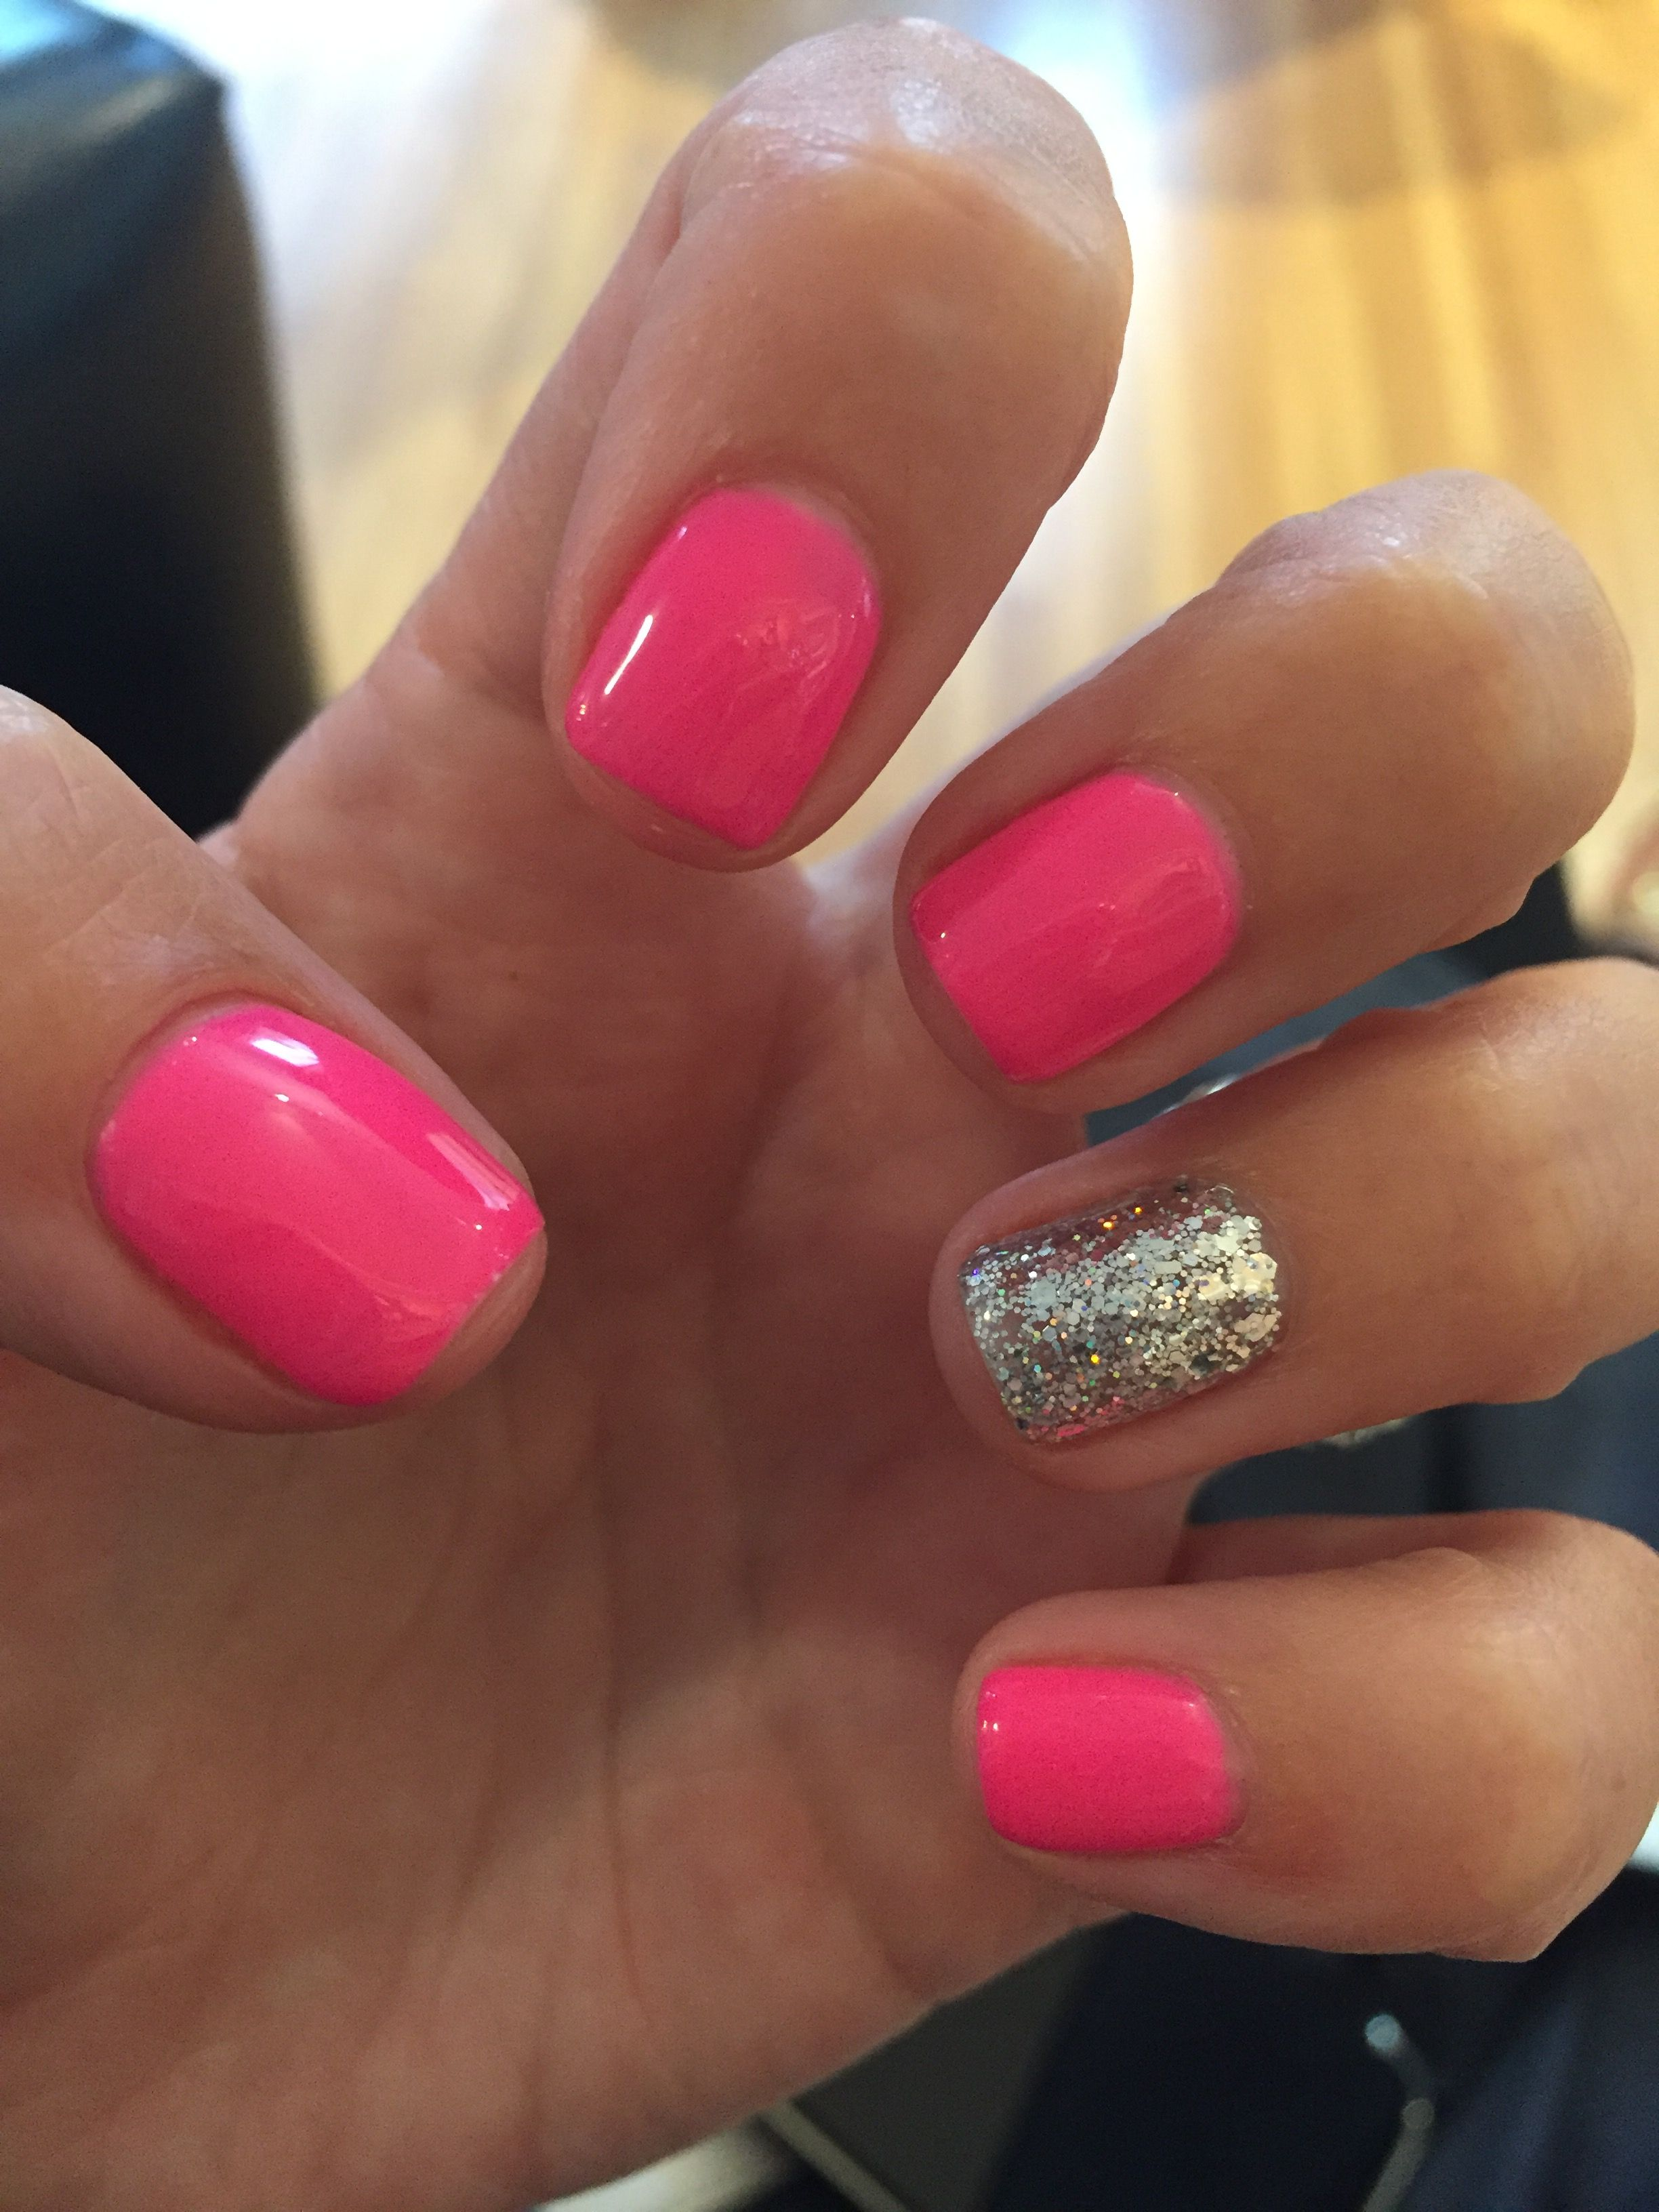 Gelish Hot Pink Sparkle Accent Nail Gel Manicure Gel Manicure Manicure Gel Nails